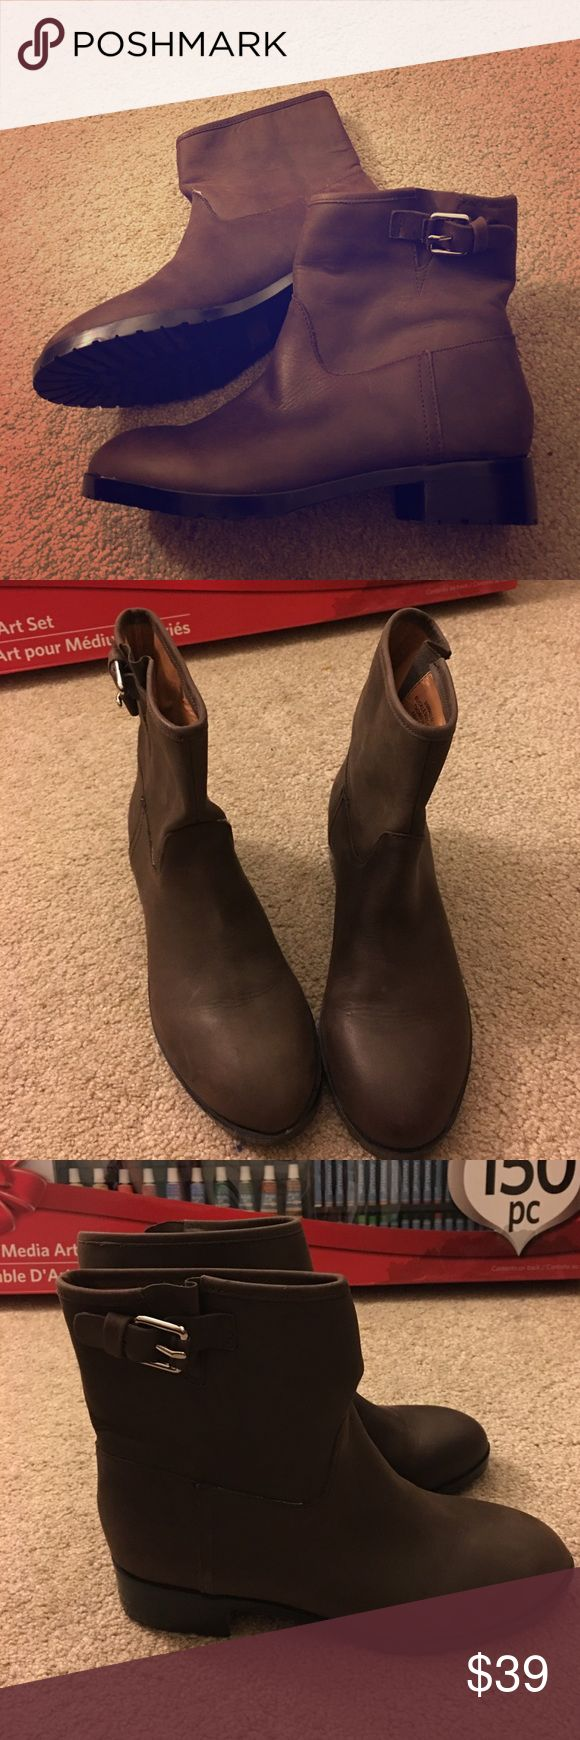 Gap Genuine Leather Booties Brand new never worn,  just tried on.  Gorgeous comfy and stylish! 1 inch boot heel. GAP Shoes Ankle Boots & Booties